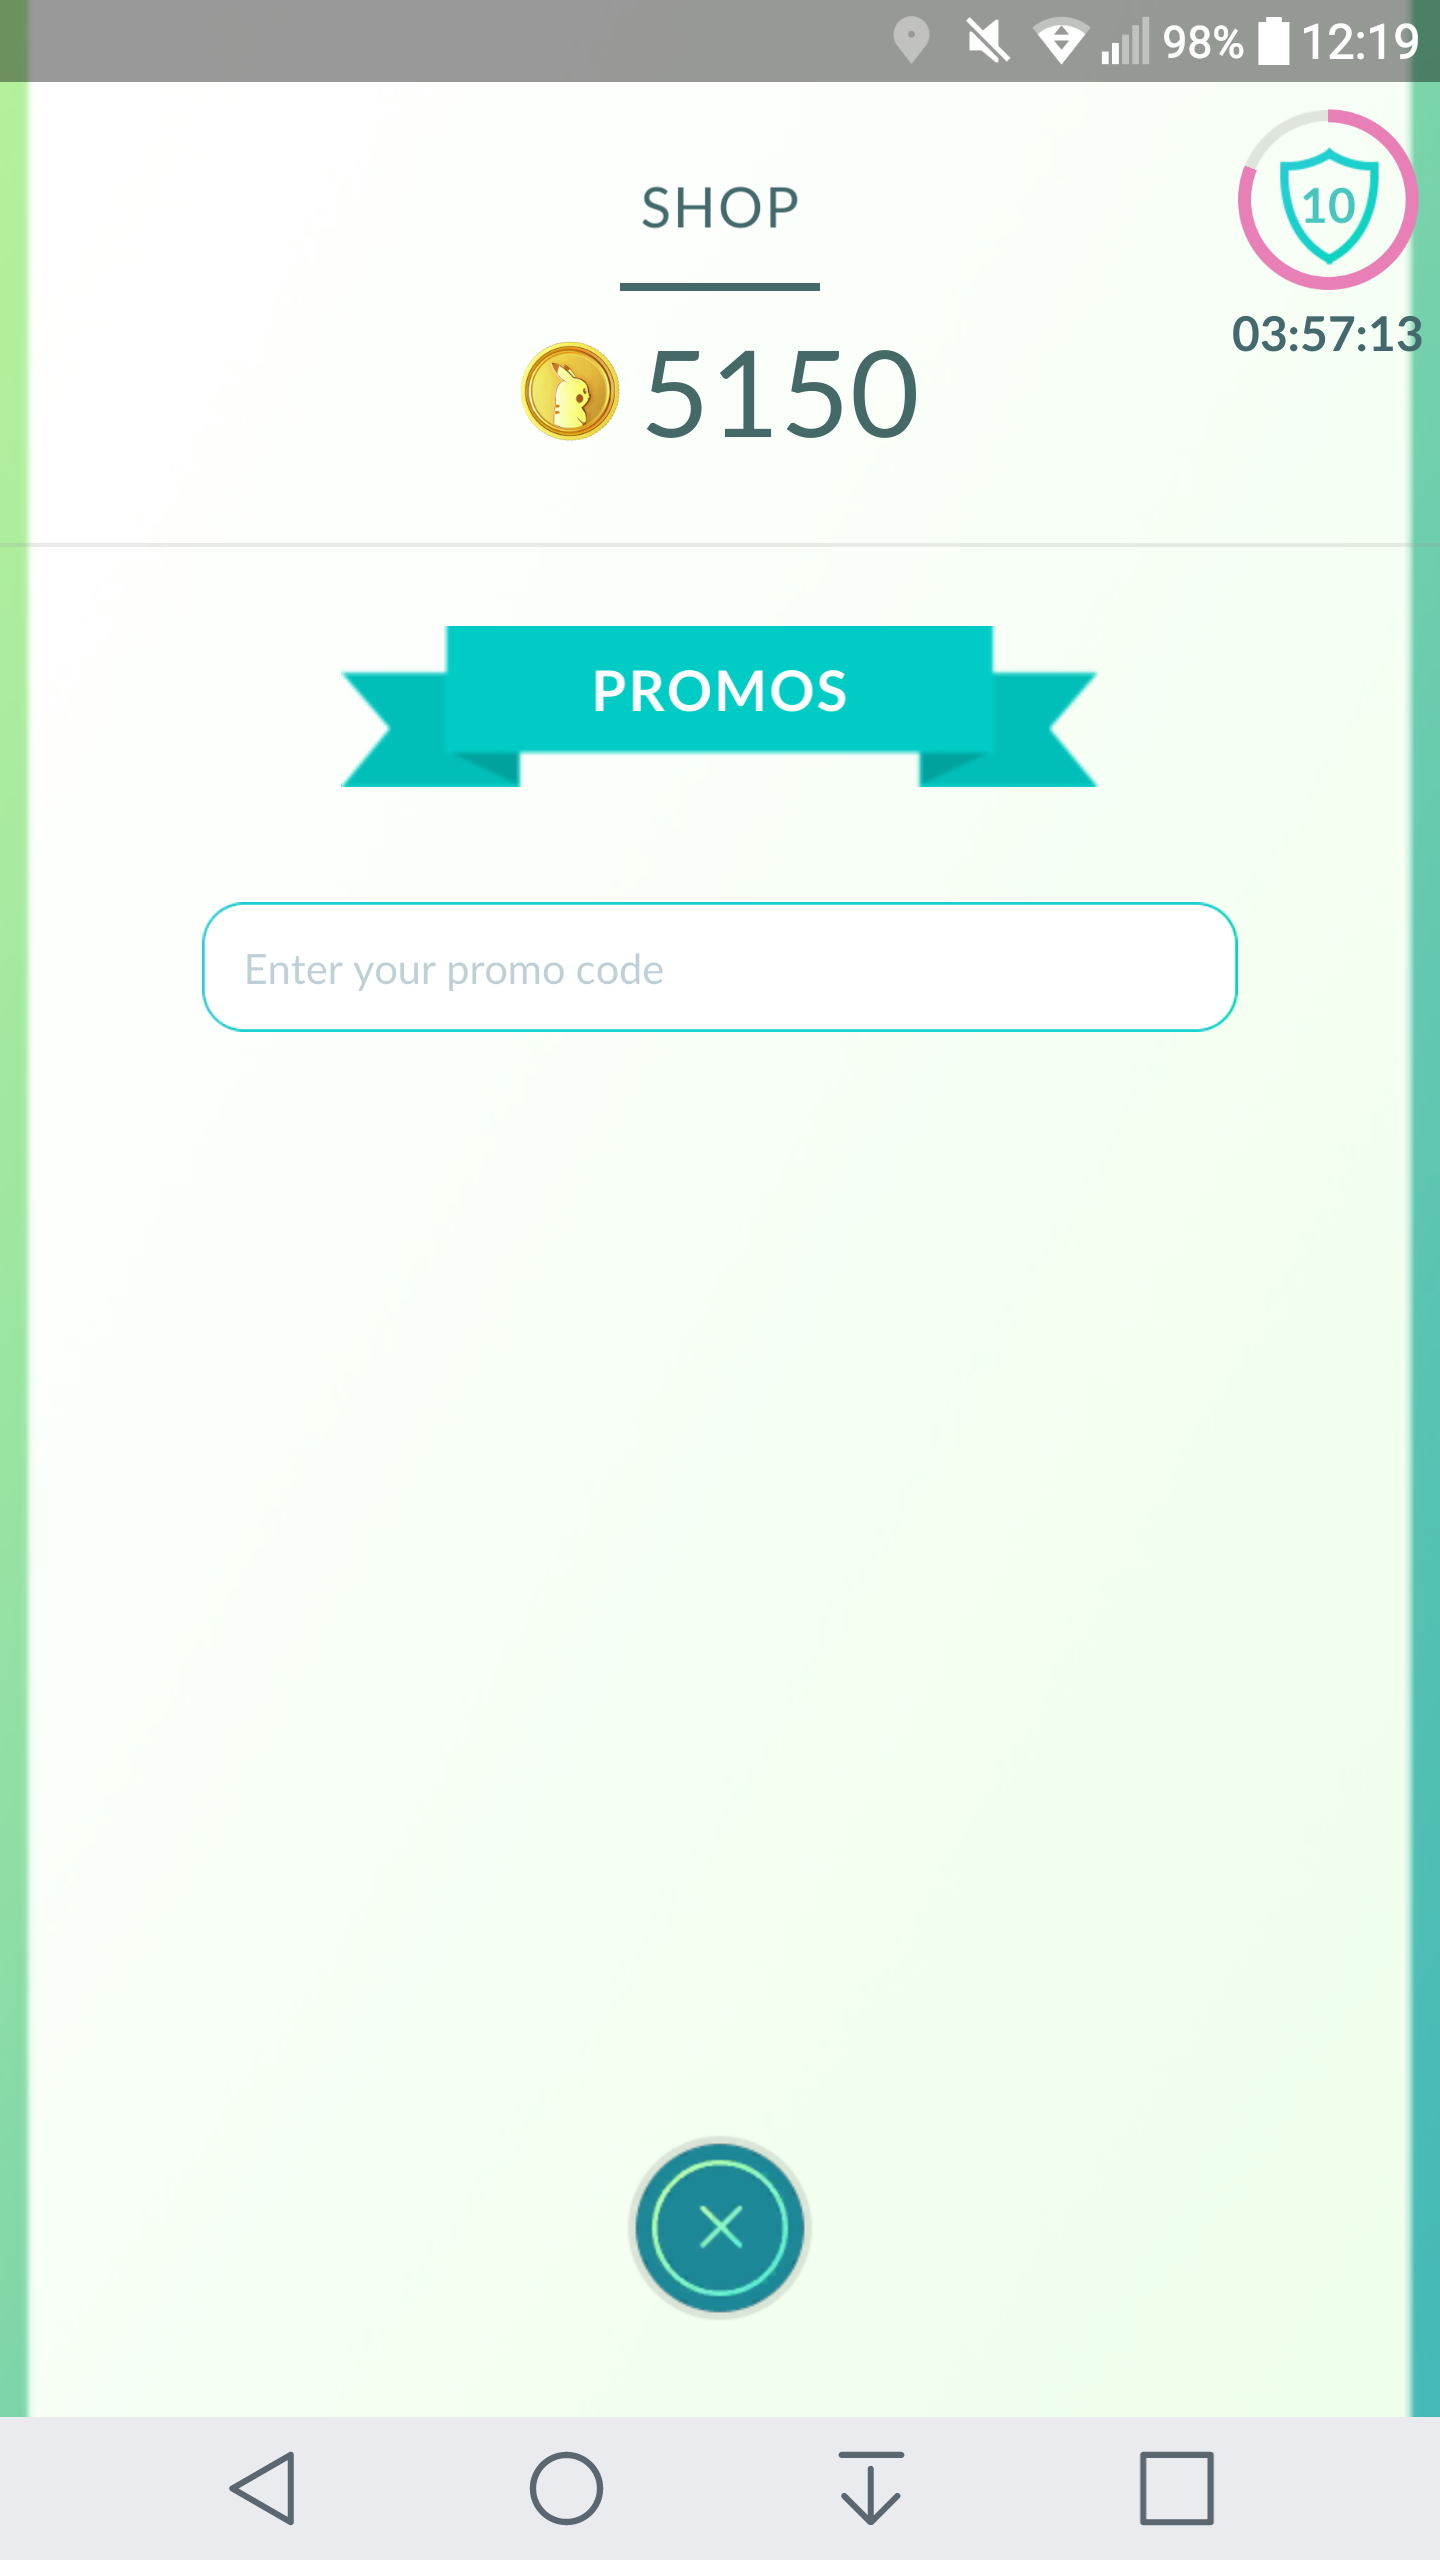 What Is The Promo Code To Unlock The Shop As Of Today I Need A Code For It Promo Codes Coding Pokemon Go